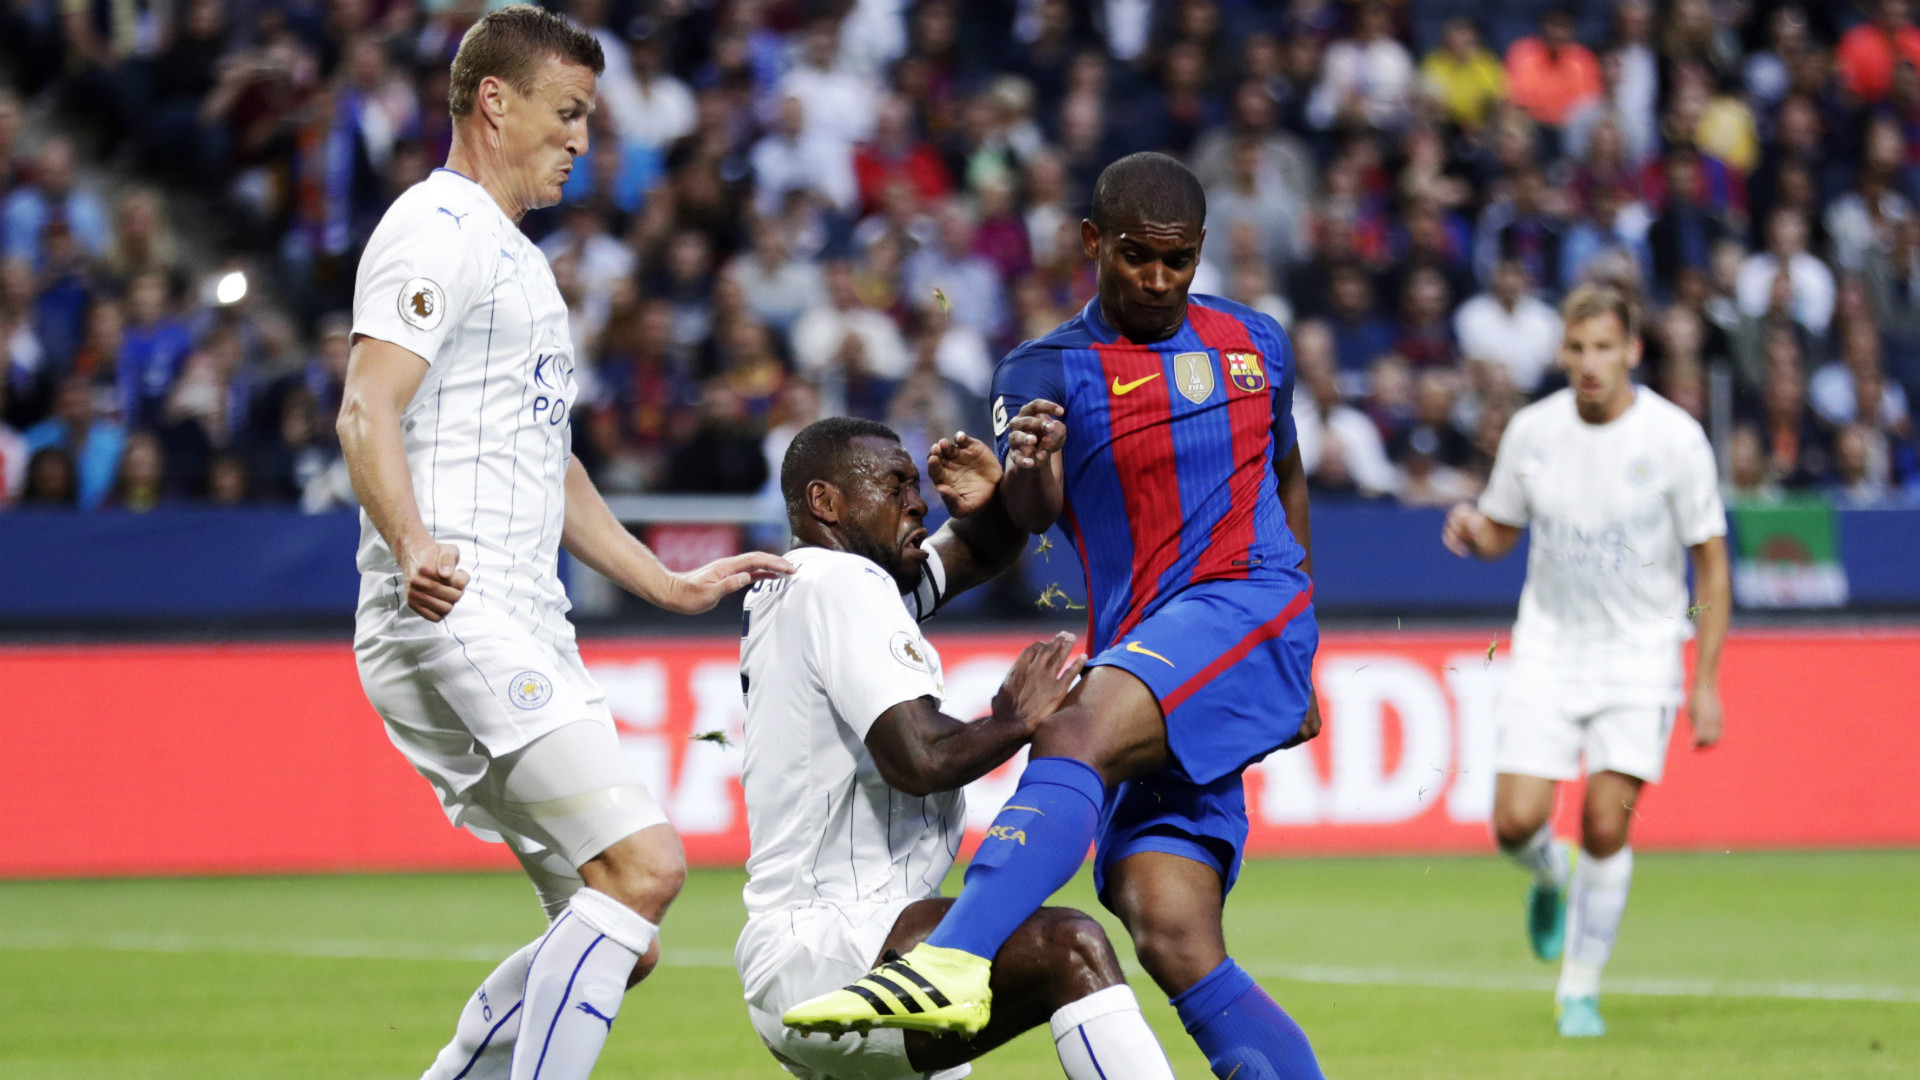 Barcelona sign Brazilian defender Marlon in three-year deal